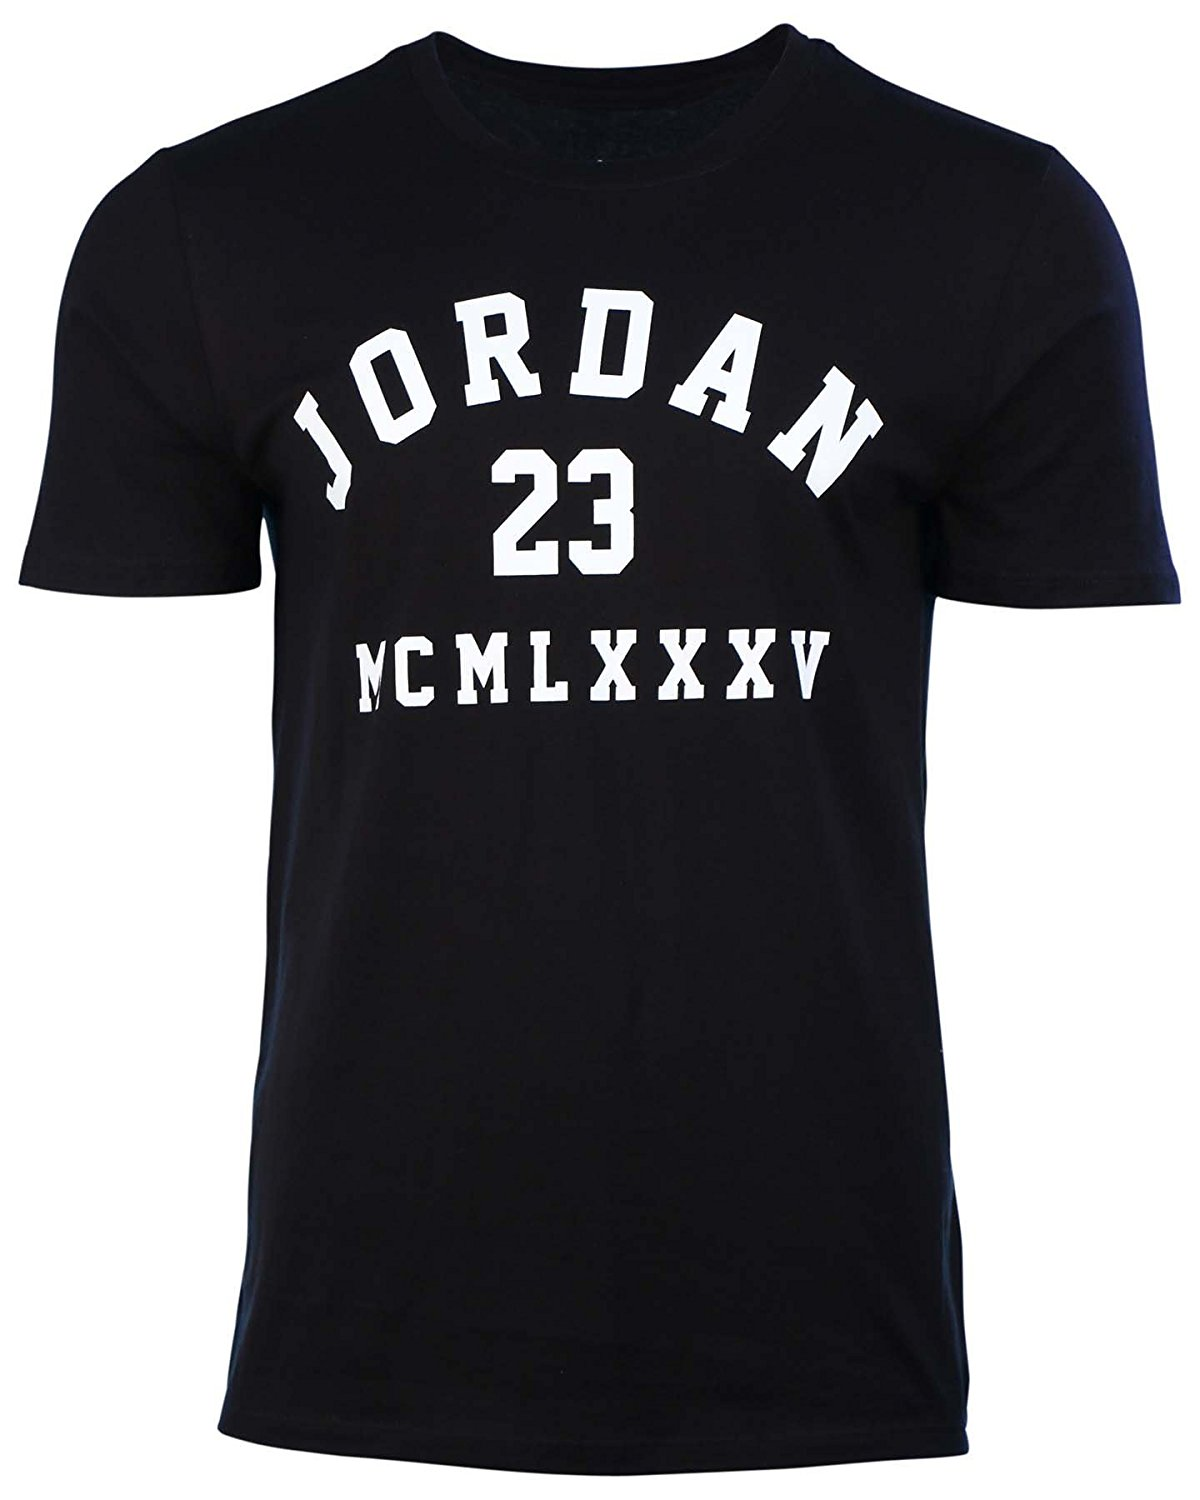 79716b9bdcf4 Get Quotations · Jordan Men s Nike 23 MCMLXXXV Basketball T-Shirt-Black-XL